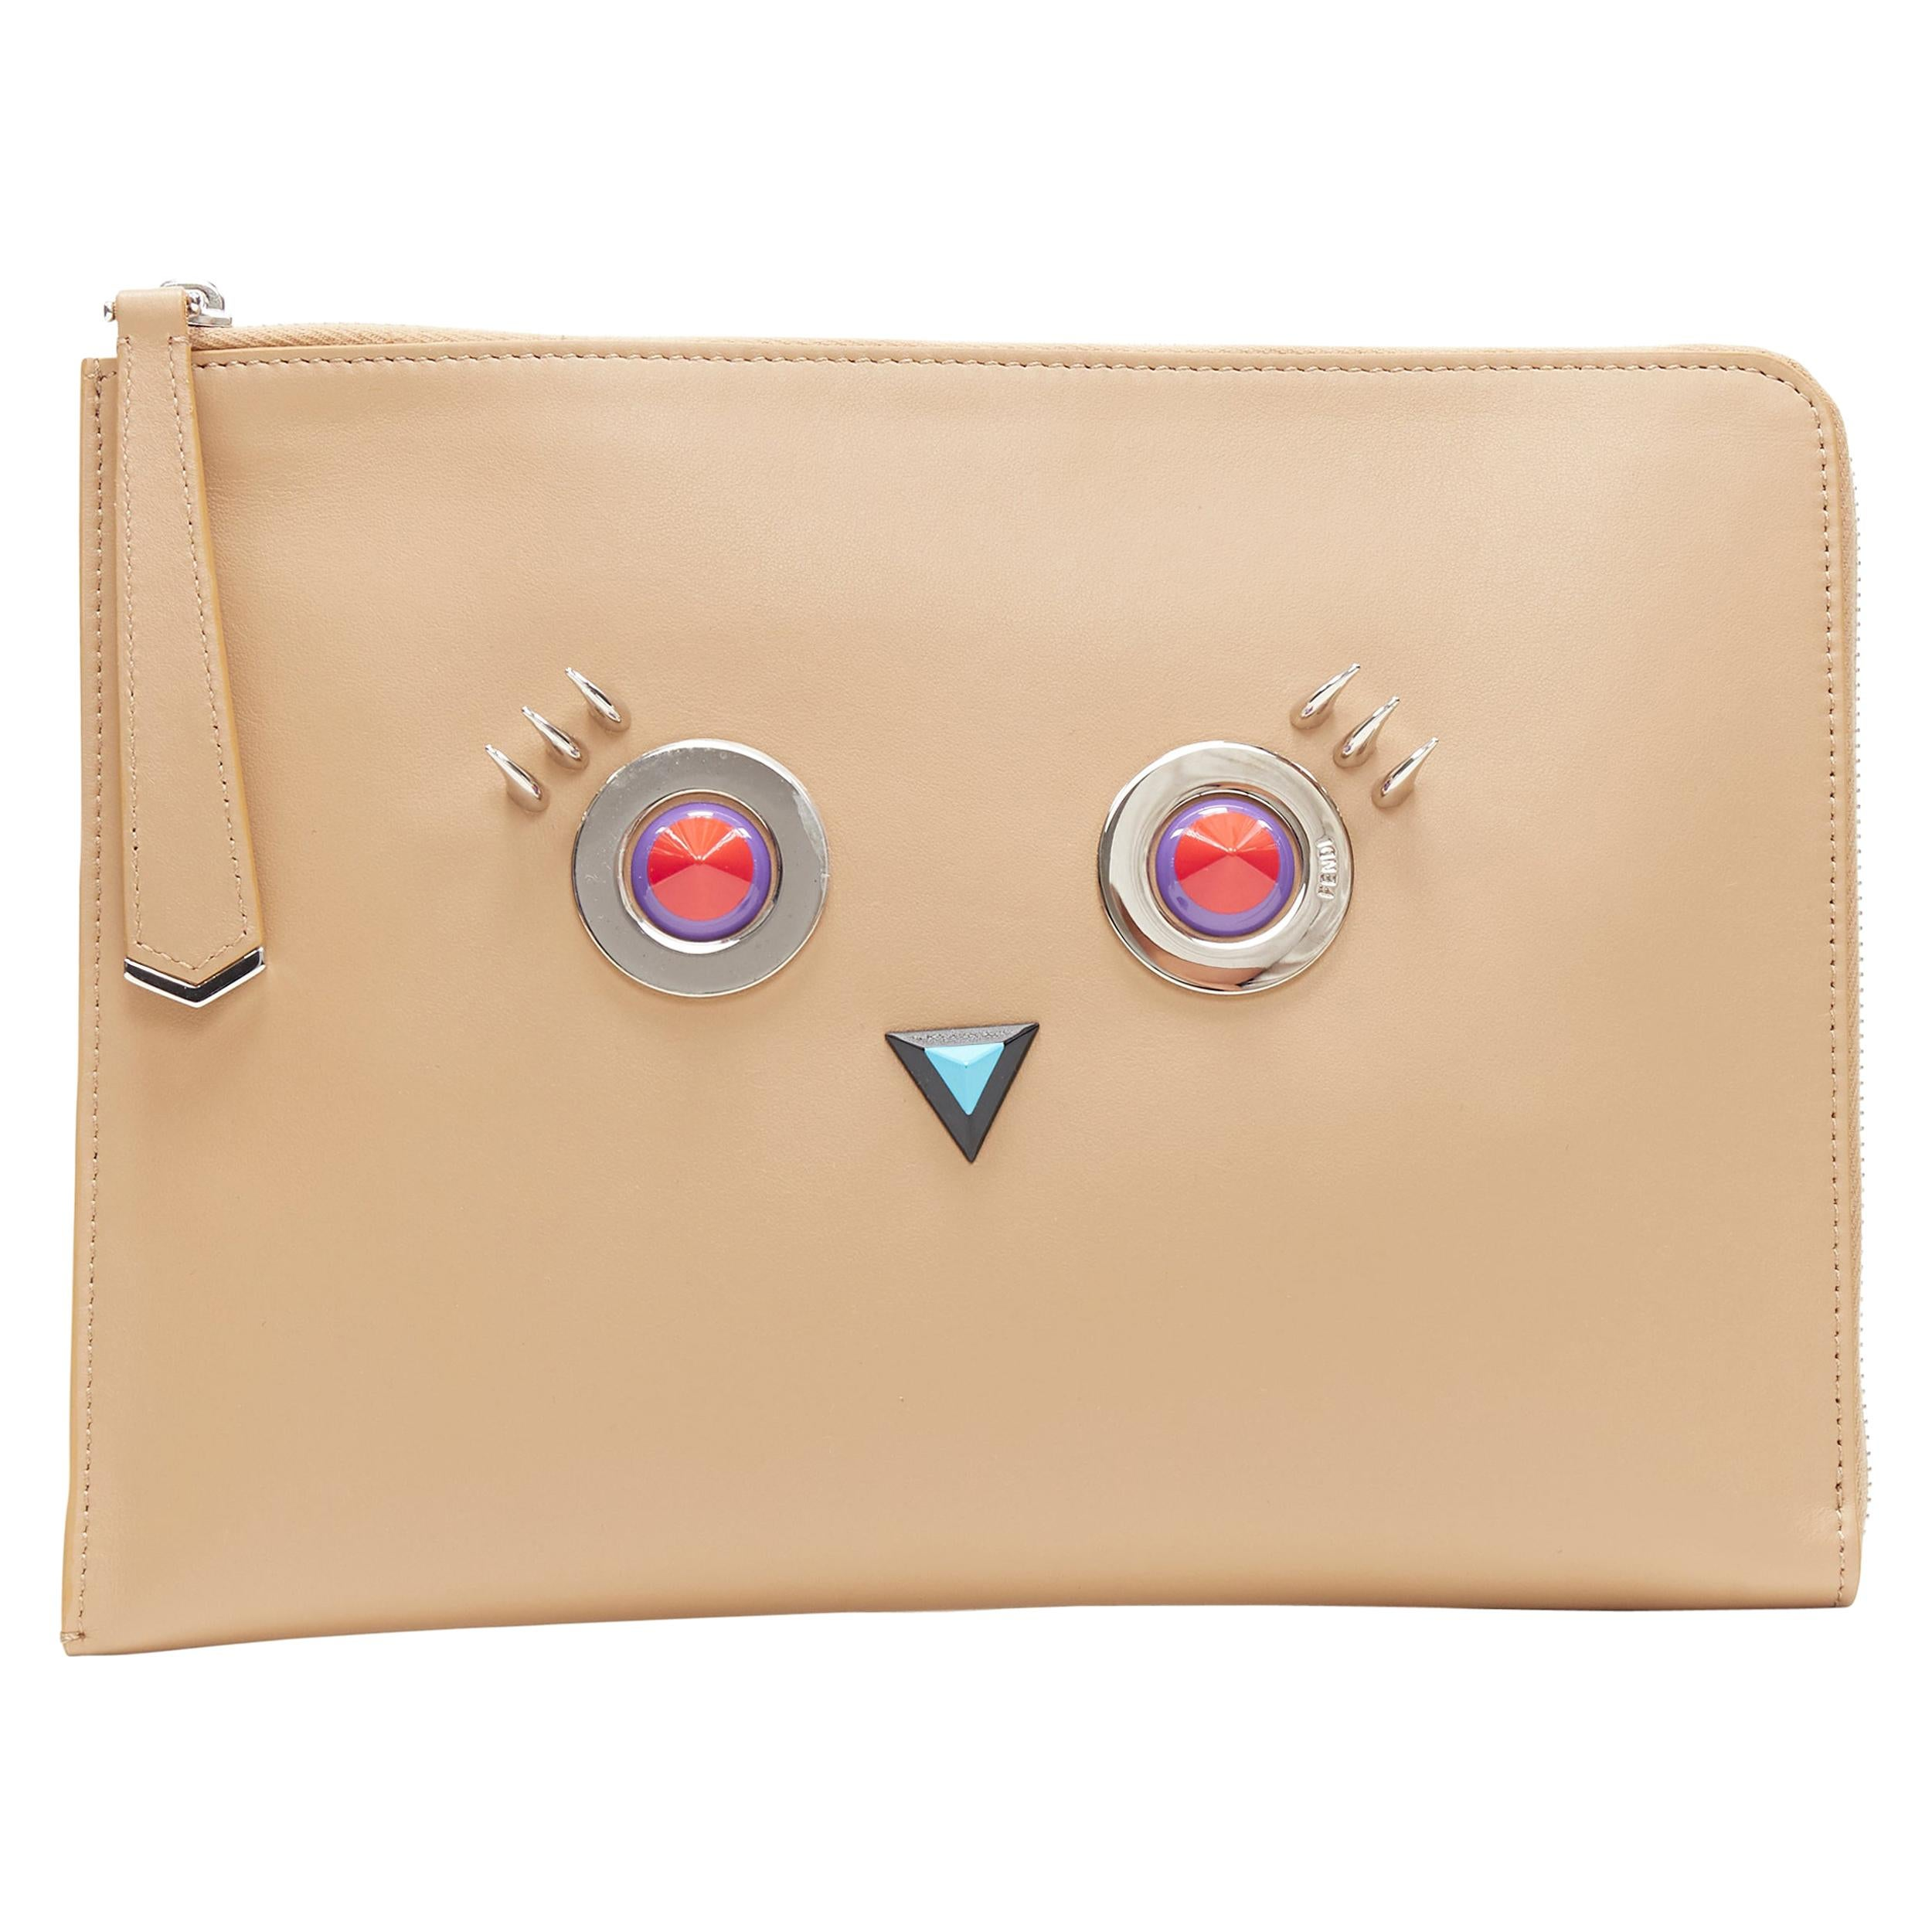 new FENDI Monster Faces tan brown stud embellished zip around pouch clutch bag